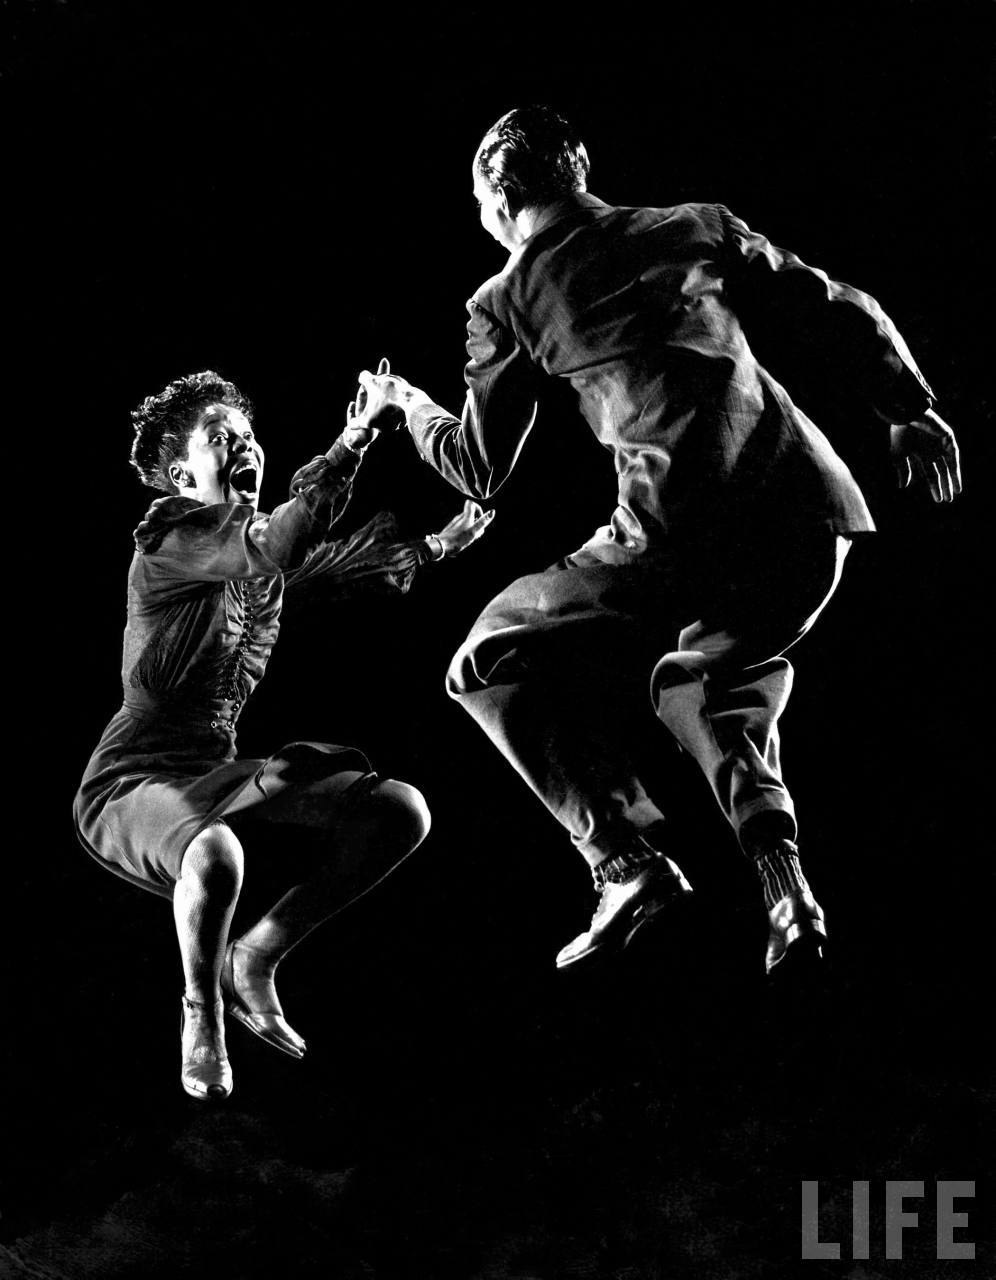 Lindy hop lifemagazine10